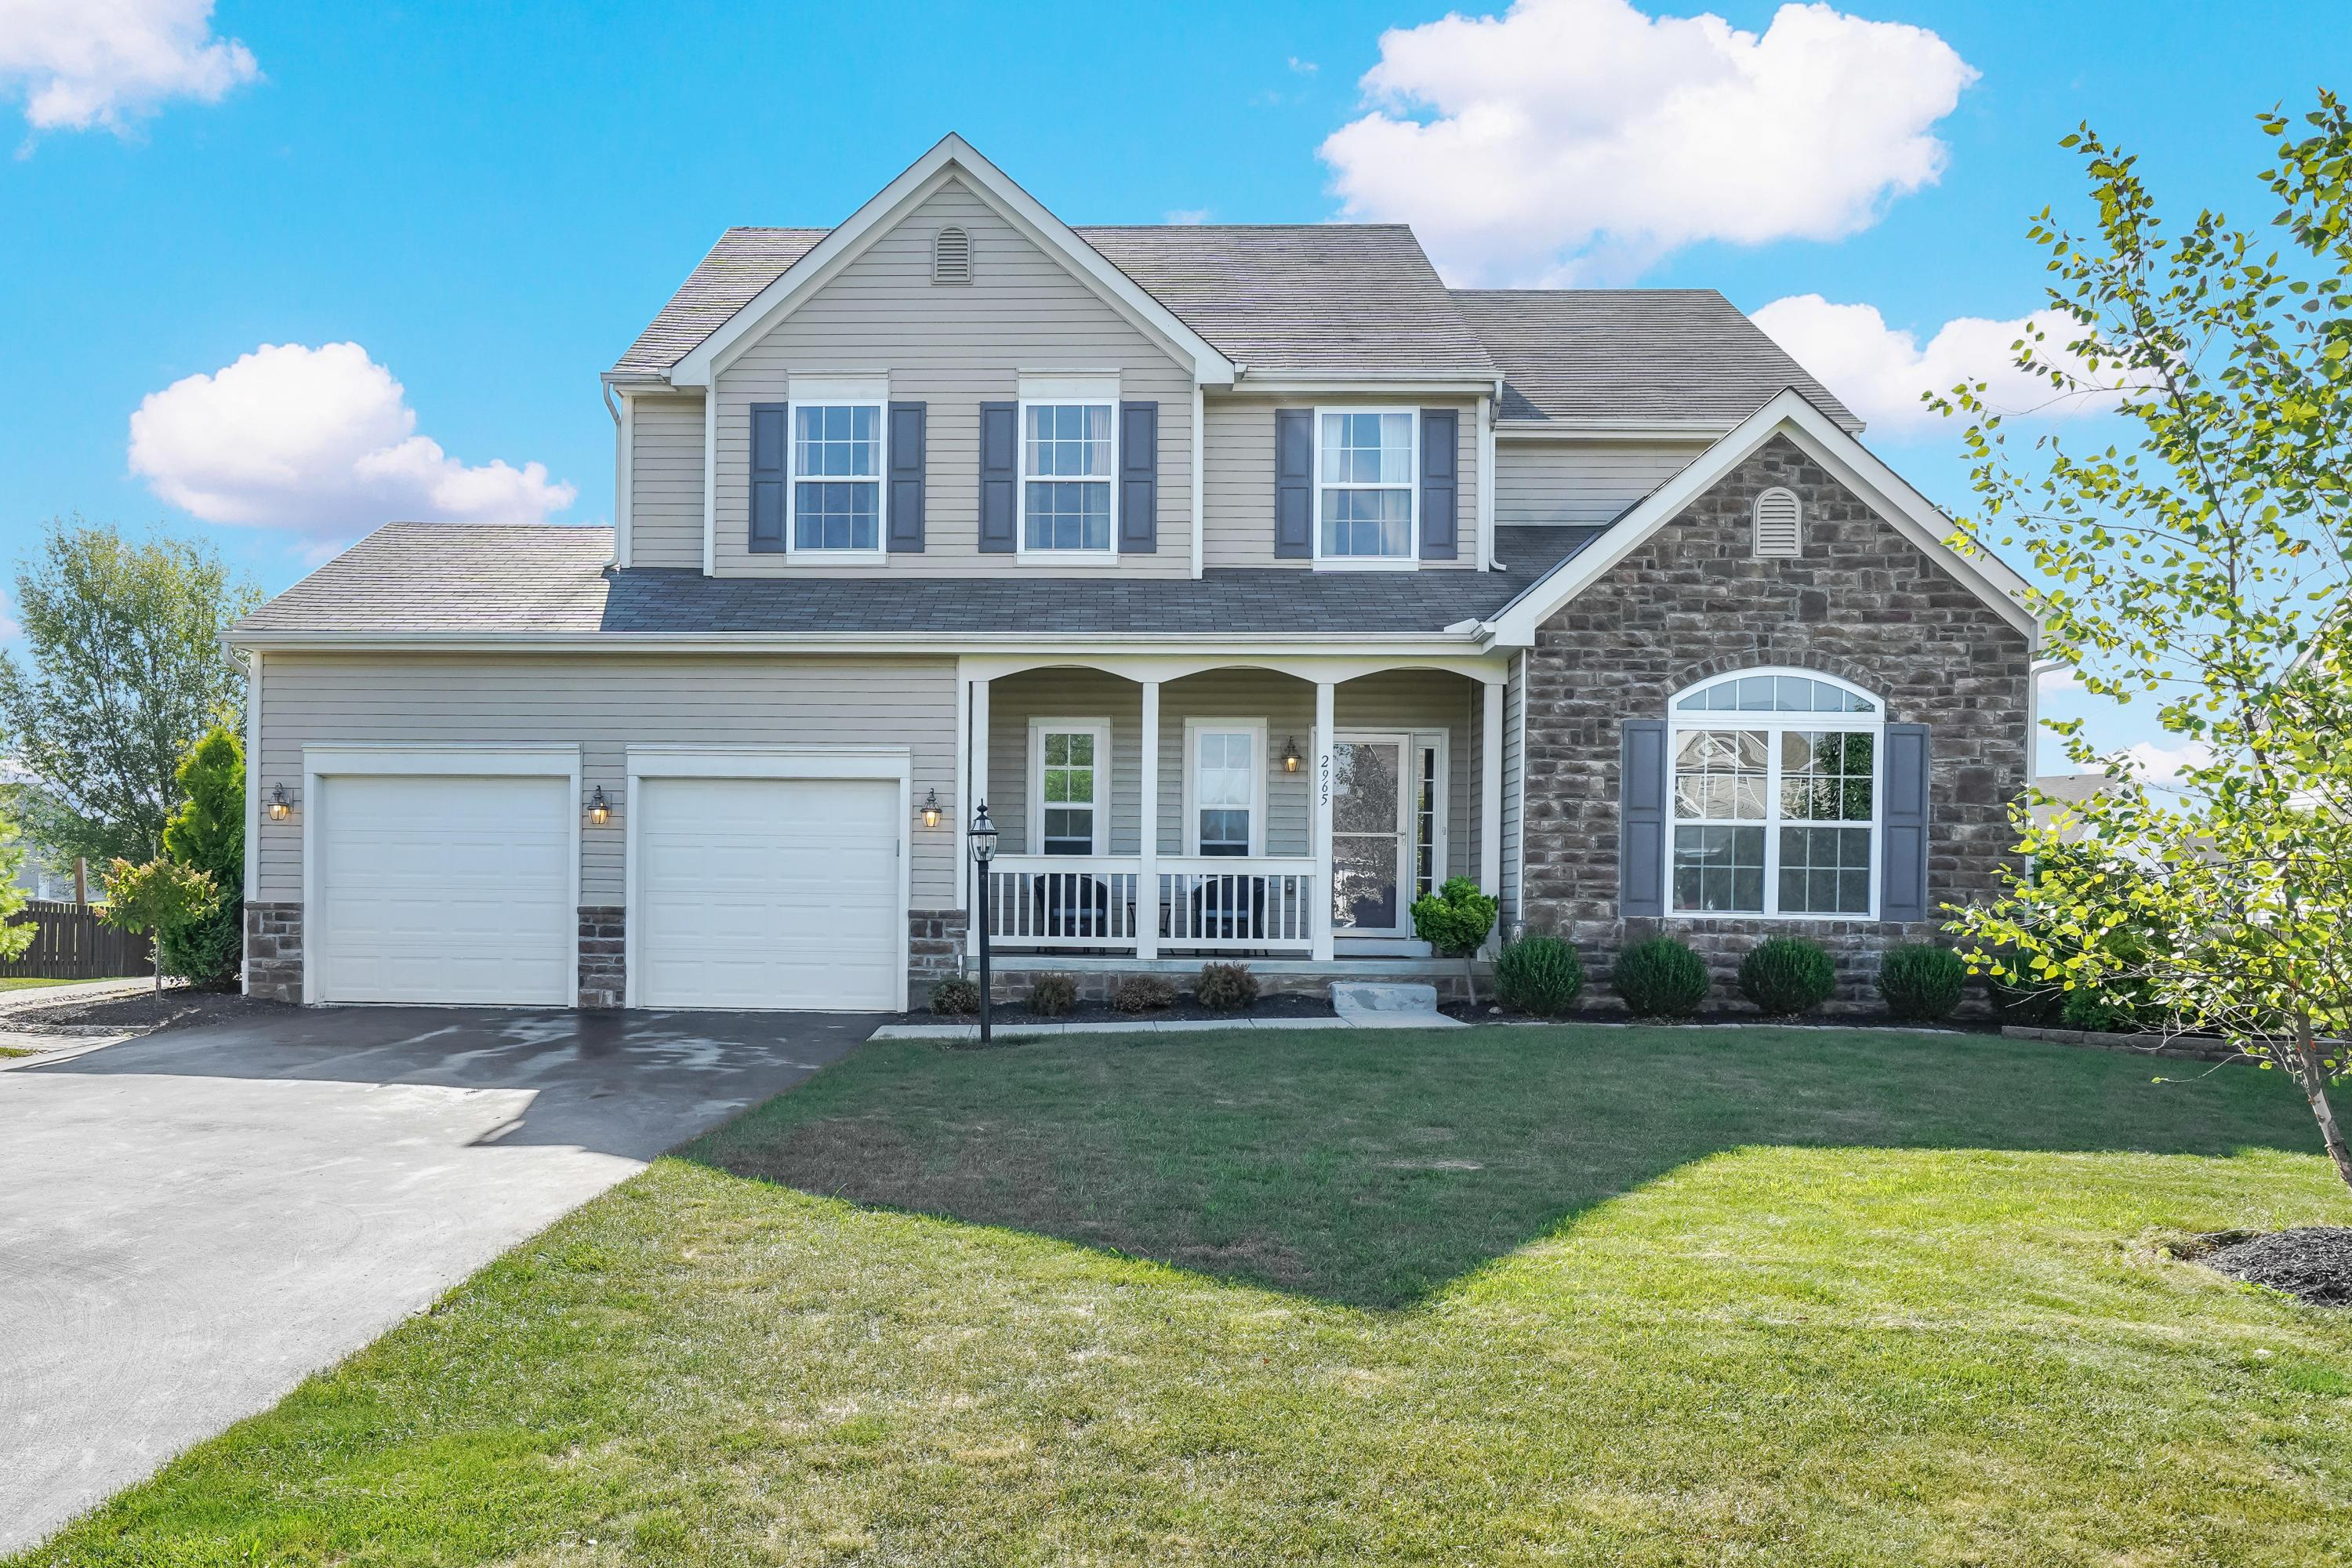 Photo of 2965 Indian Summer Drive, Galena, OH 43021